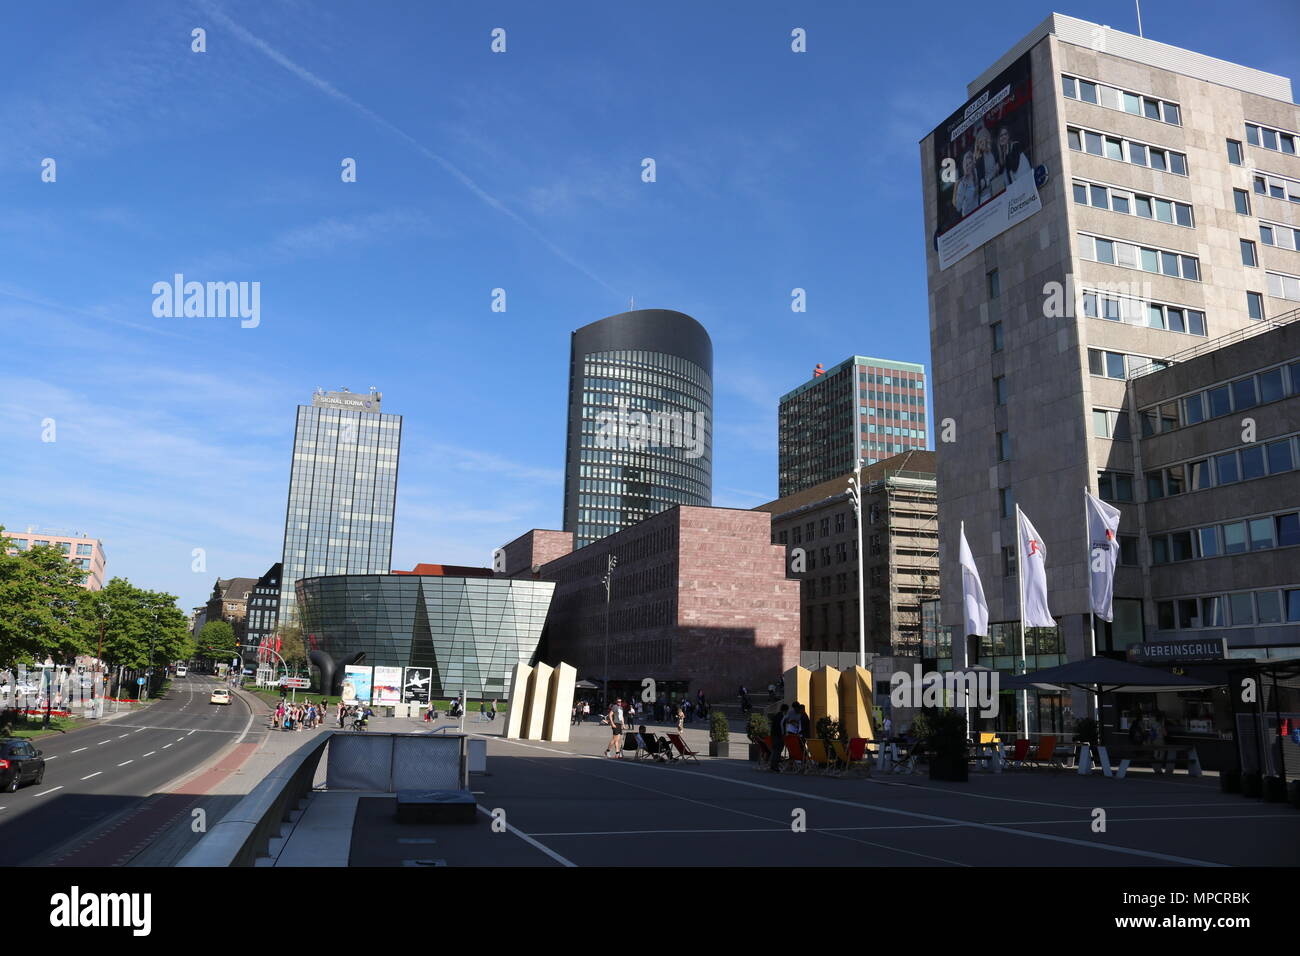 Dortmund, Ruhr Area, North Rhine Westphalia, Germany - April 16 2018: Inner City skyline buildings - Stock Image